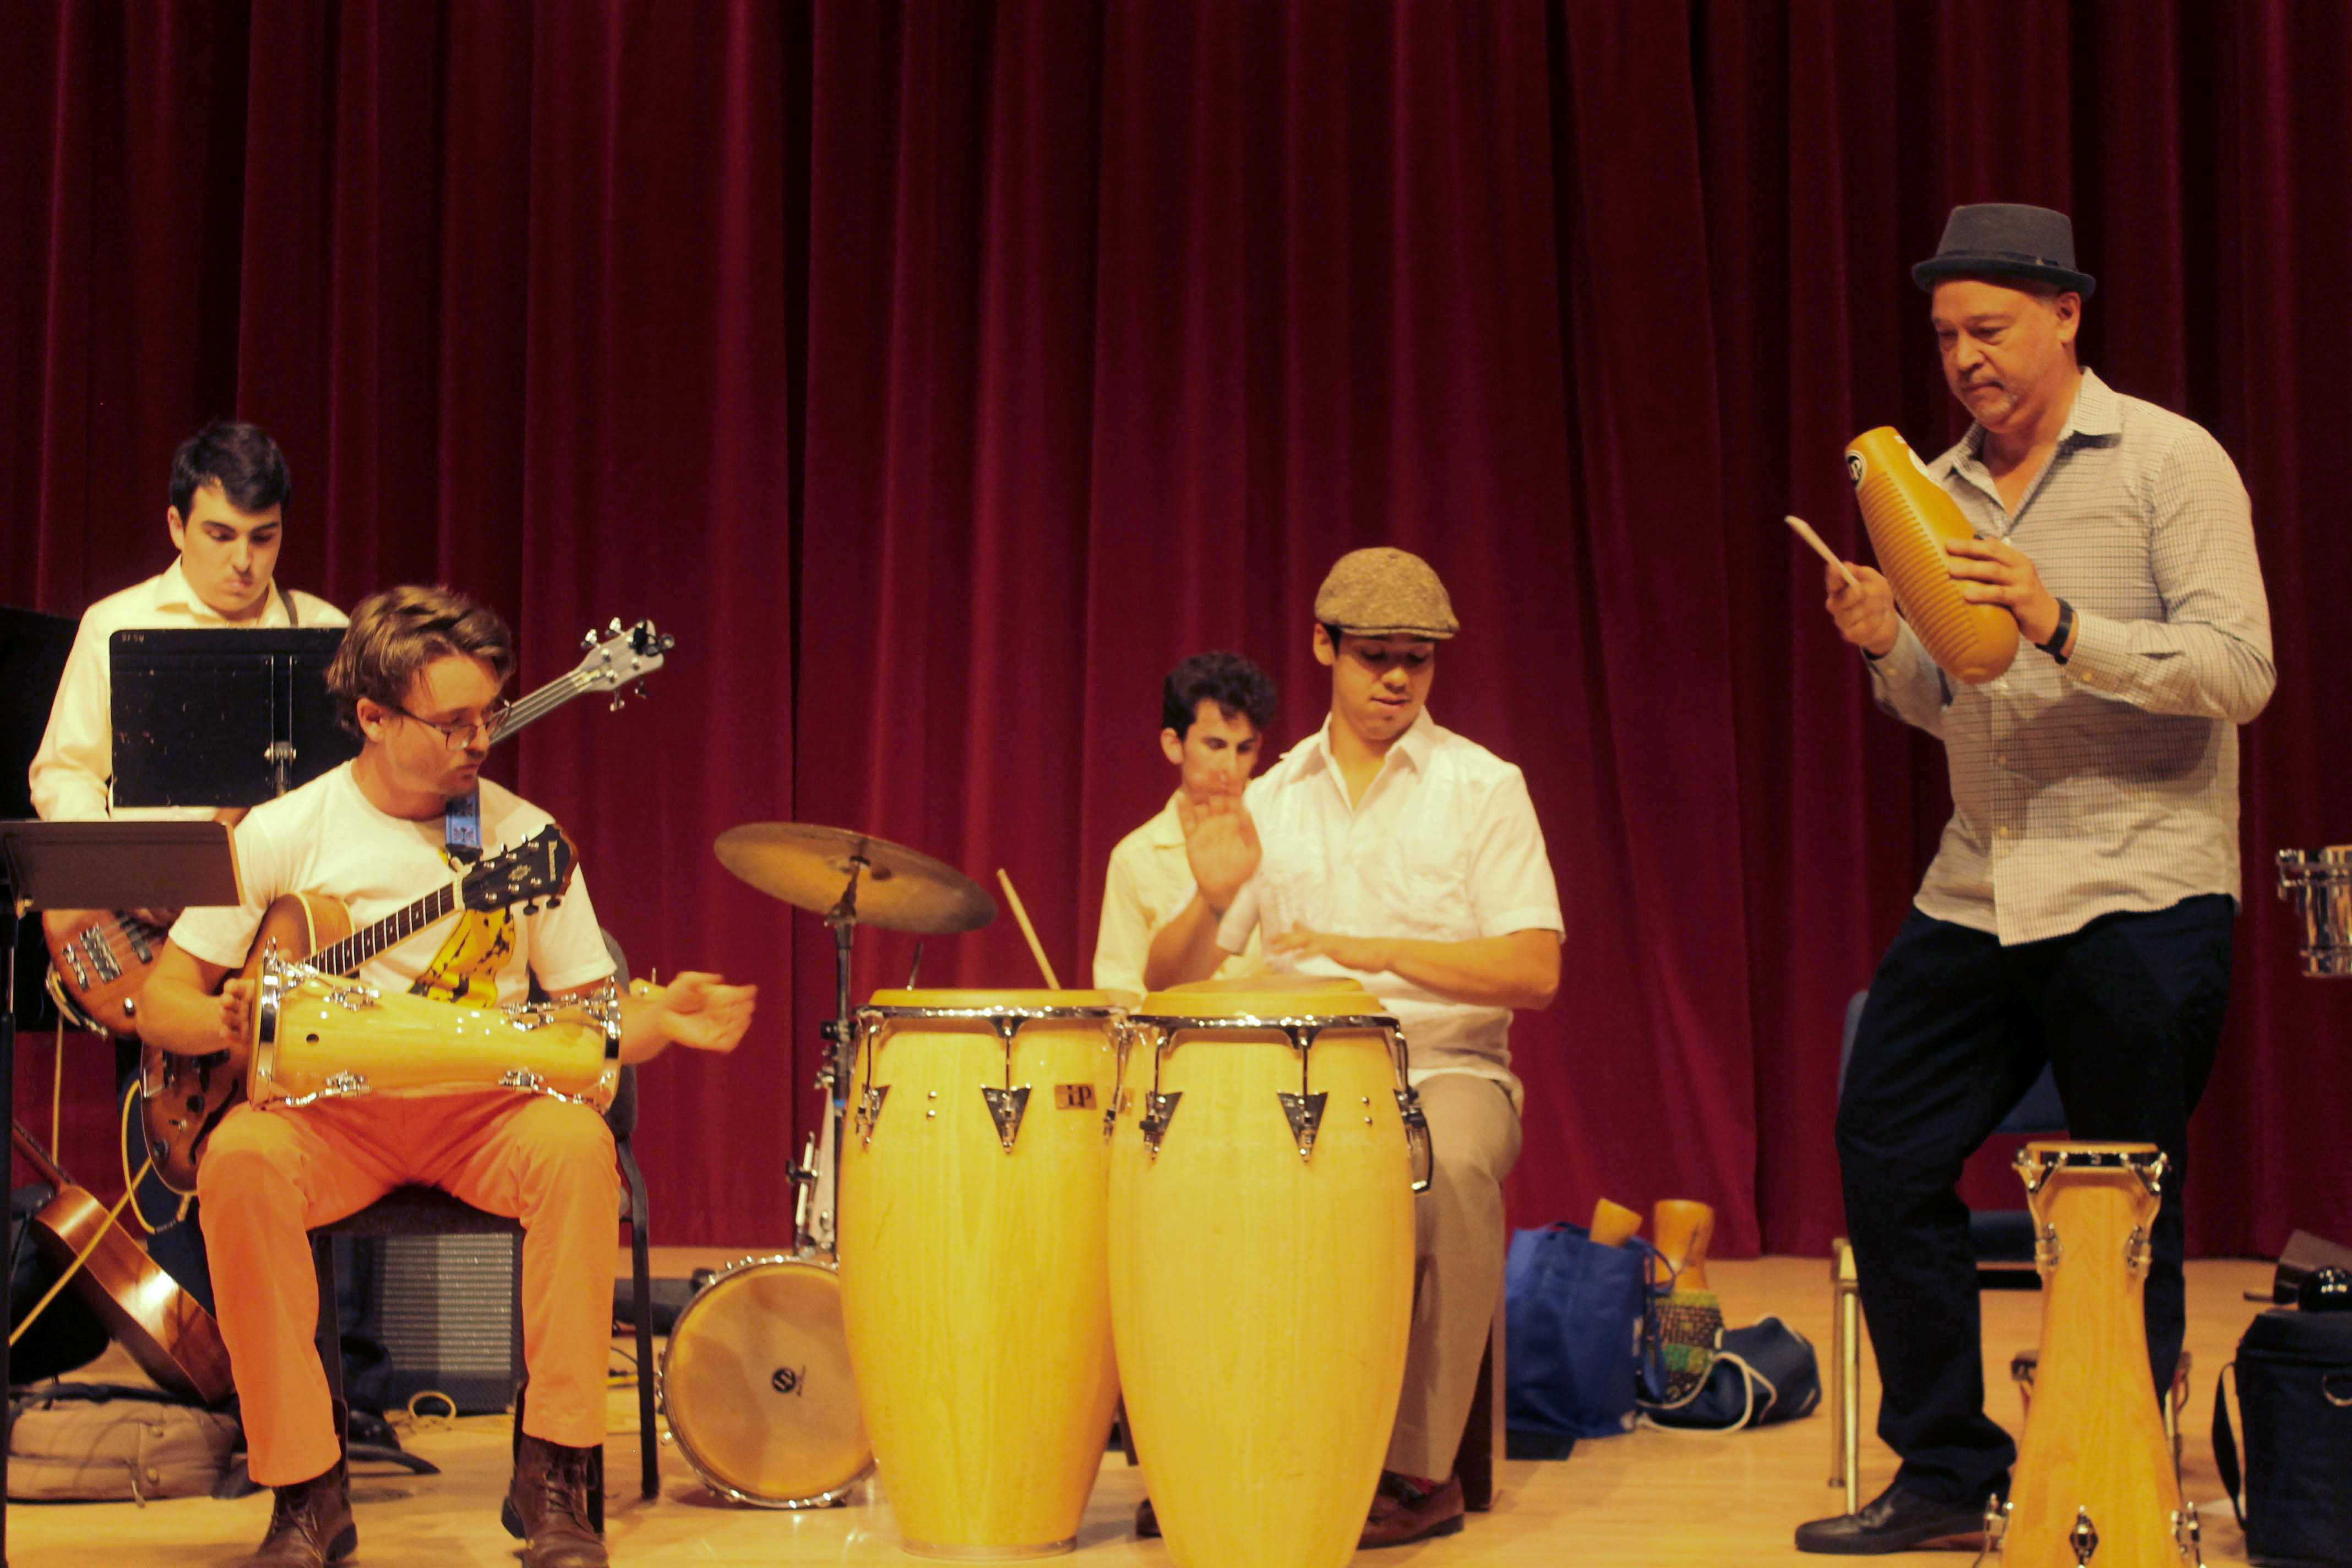 Afro Cuban Ensemble of San Francisco State University perform in Knuth Hall in the Creative Arts department at SF State on Wednesday, November 7, 2017. (Bryan Ramirez/Golden Gate Xpress)